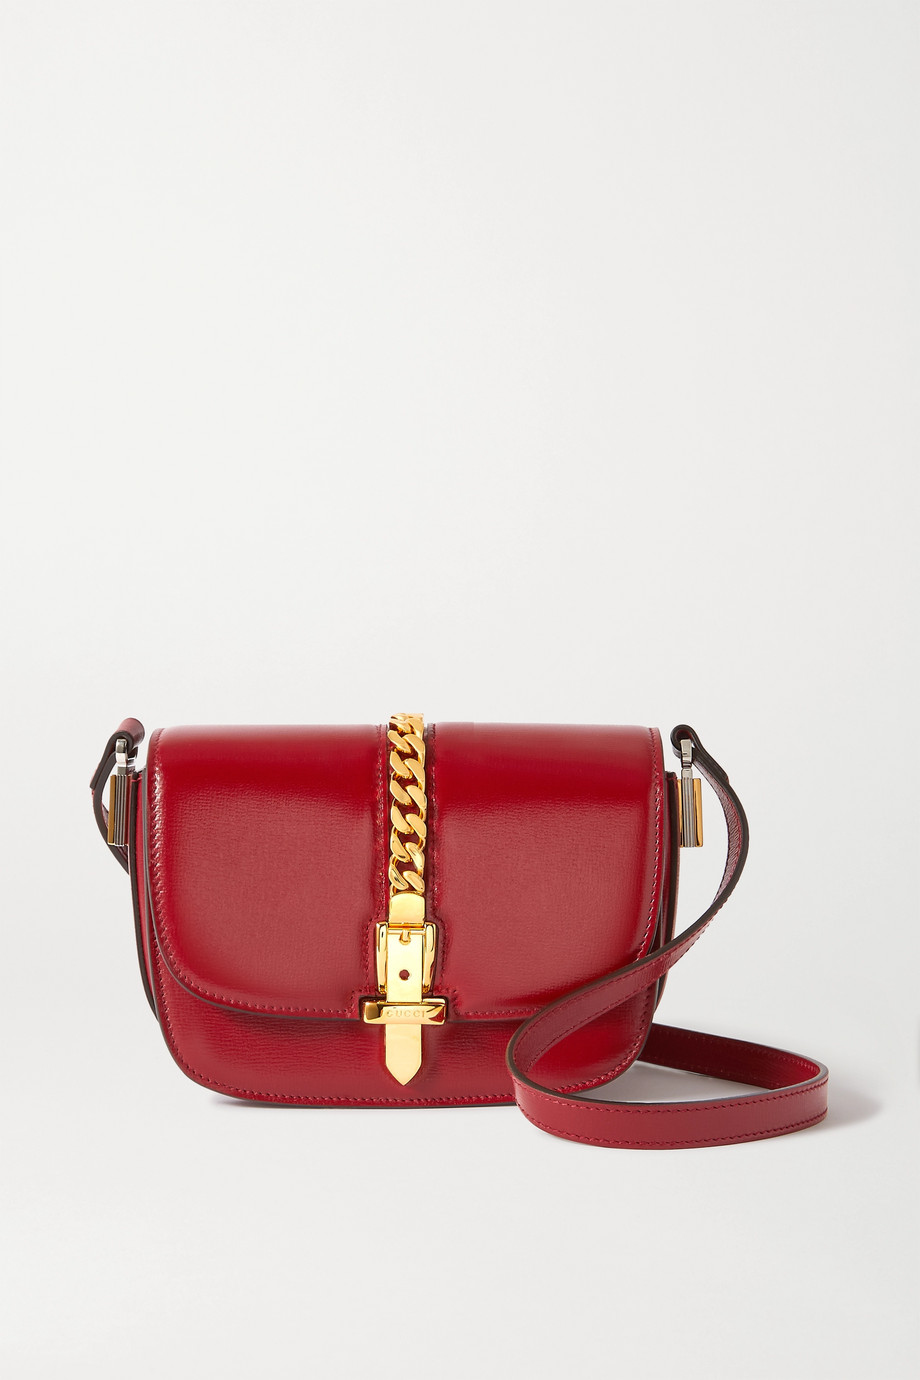 Gucci Sylvie 1969 mini chain-embellished leather shoulder bag